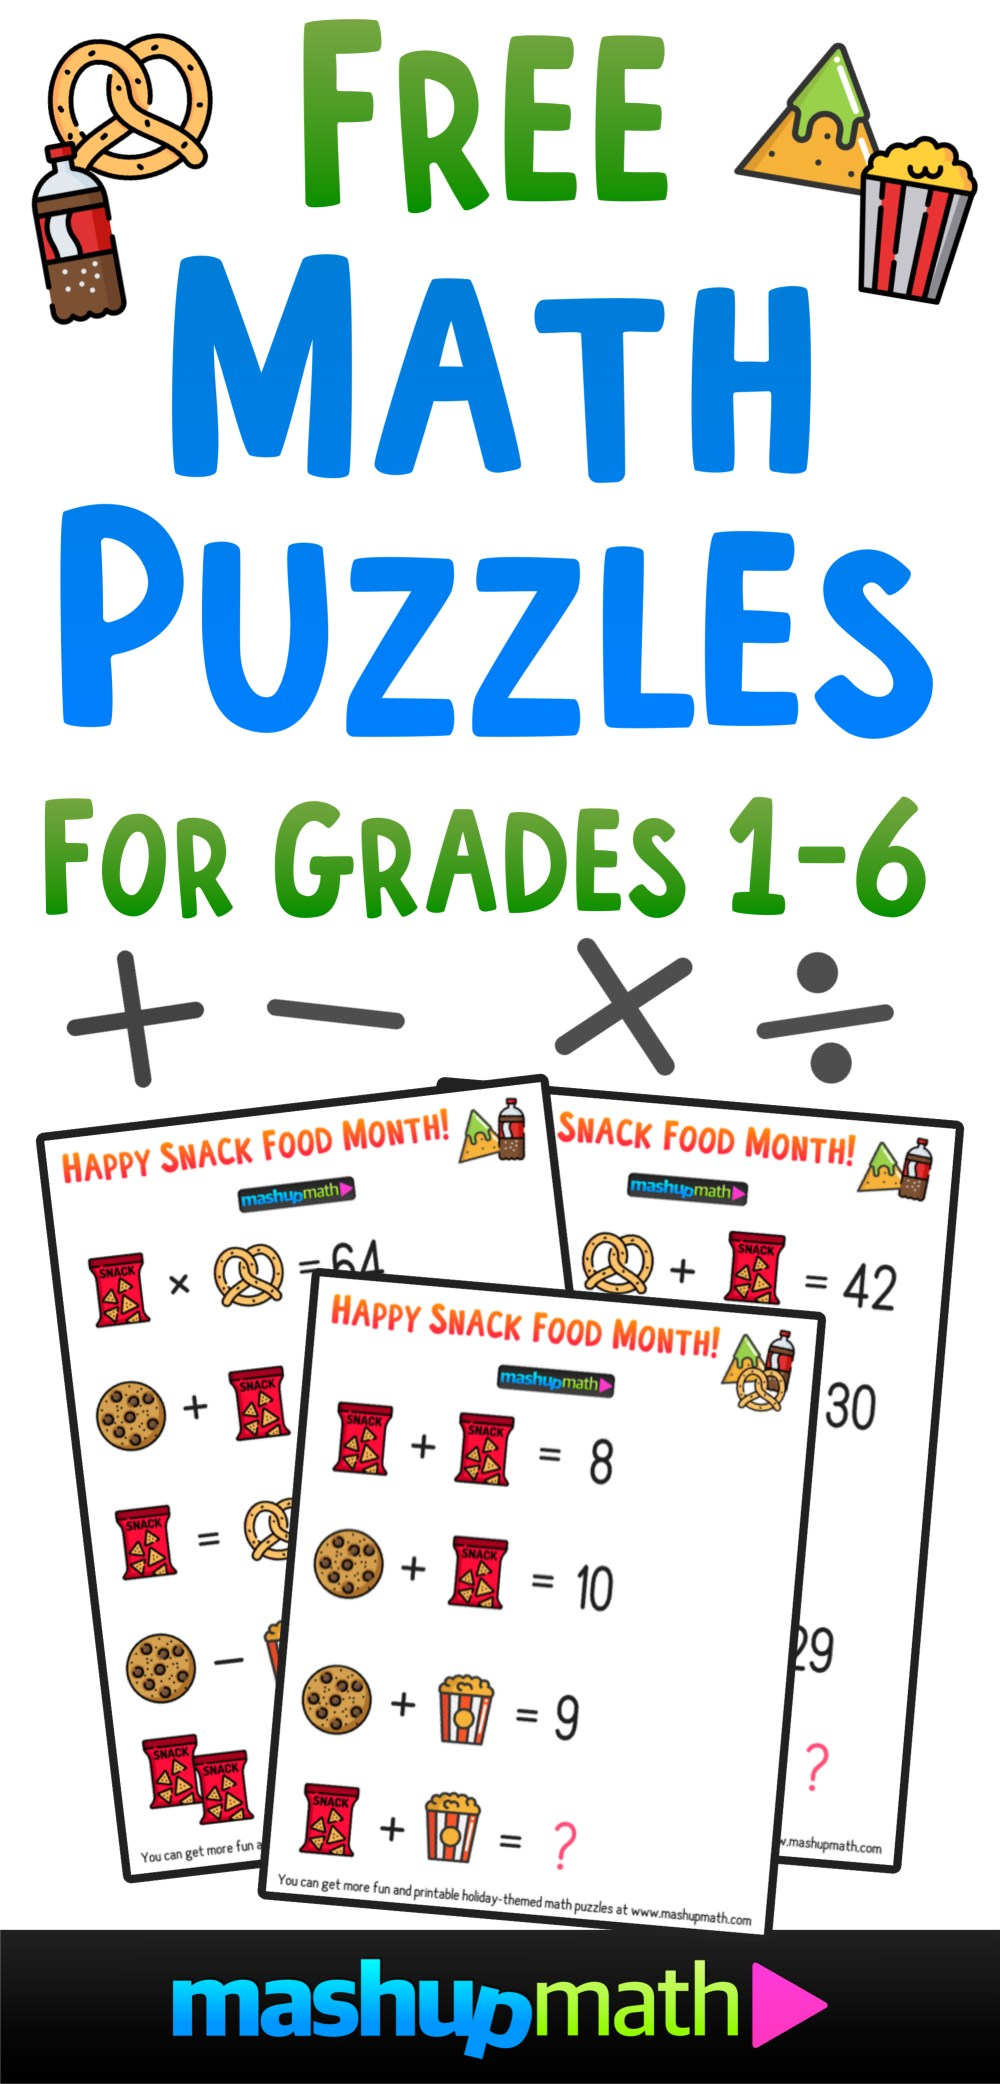 medium resolution of Free Math Brain Teaser Puzzles for Kids in Grades 1-6 to Celebrate Snack  Food Month! — Mashup Math